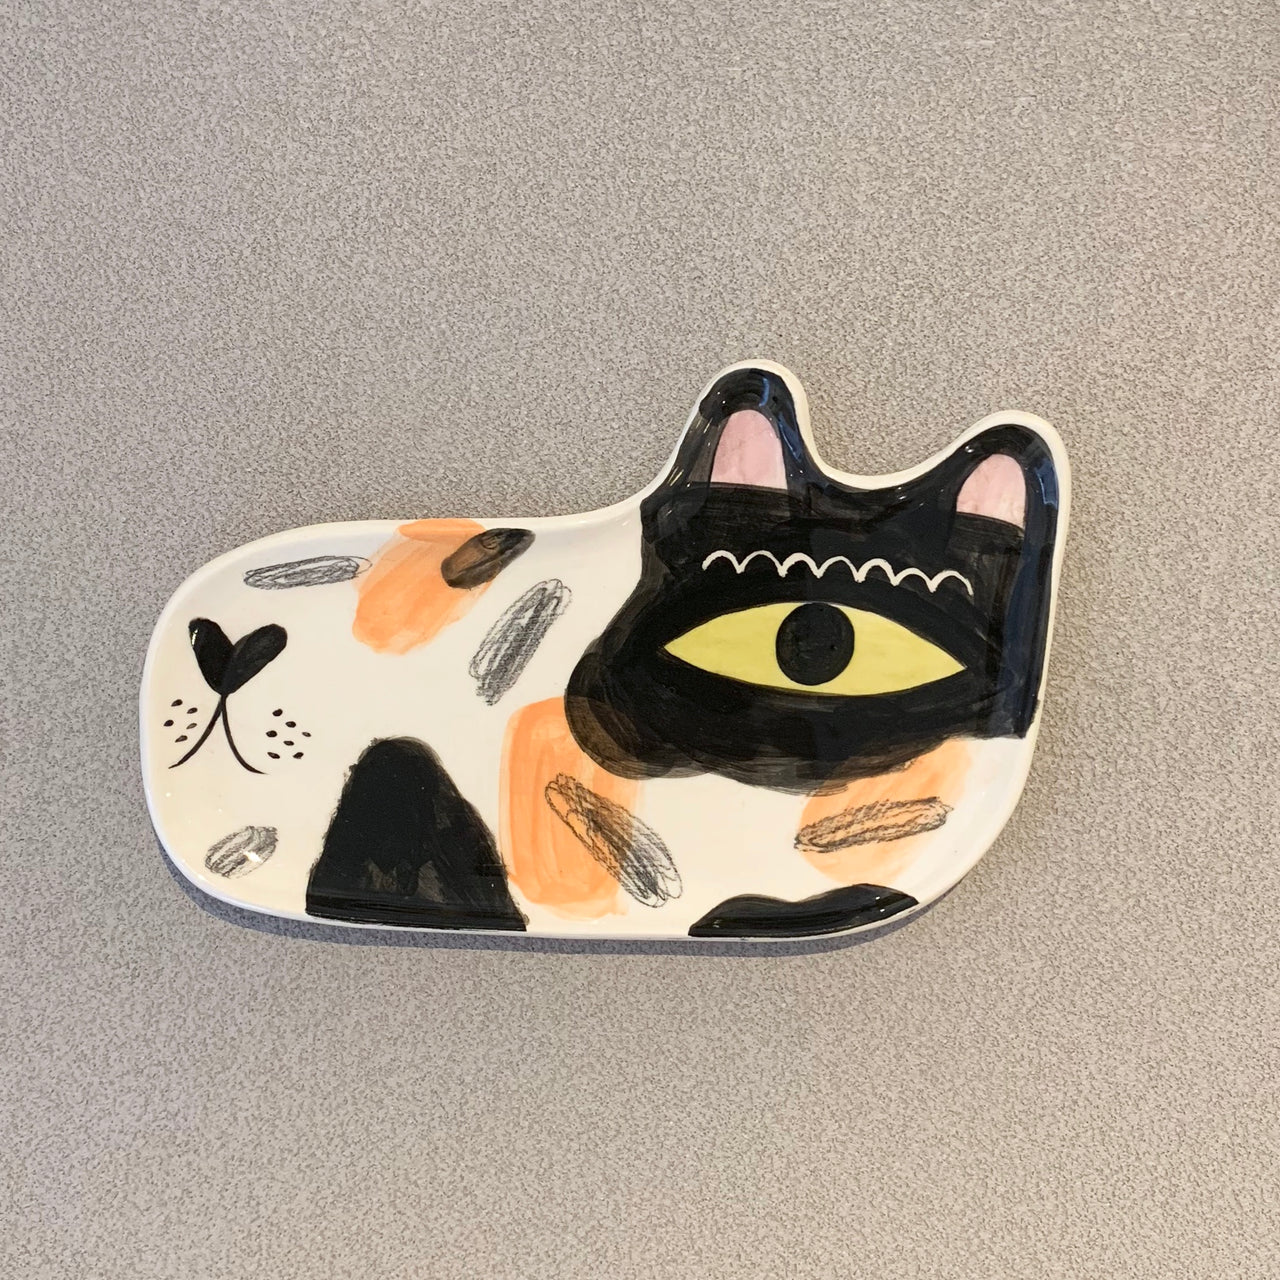 Orange and Black Cat Plate